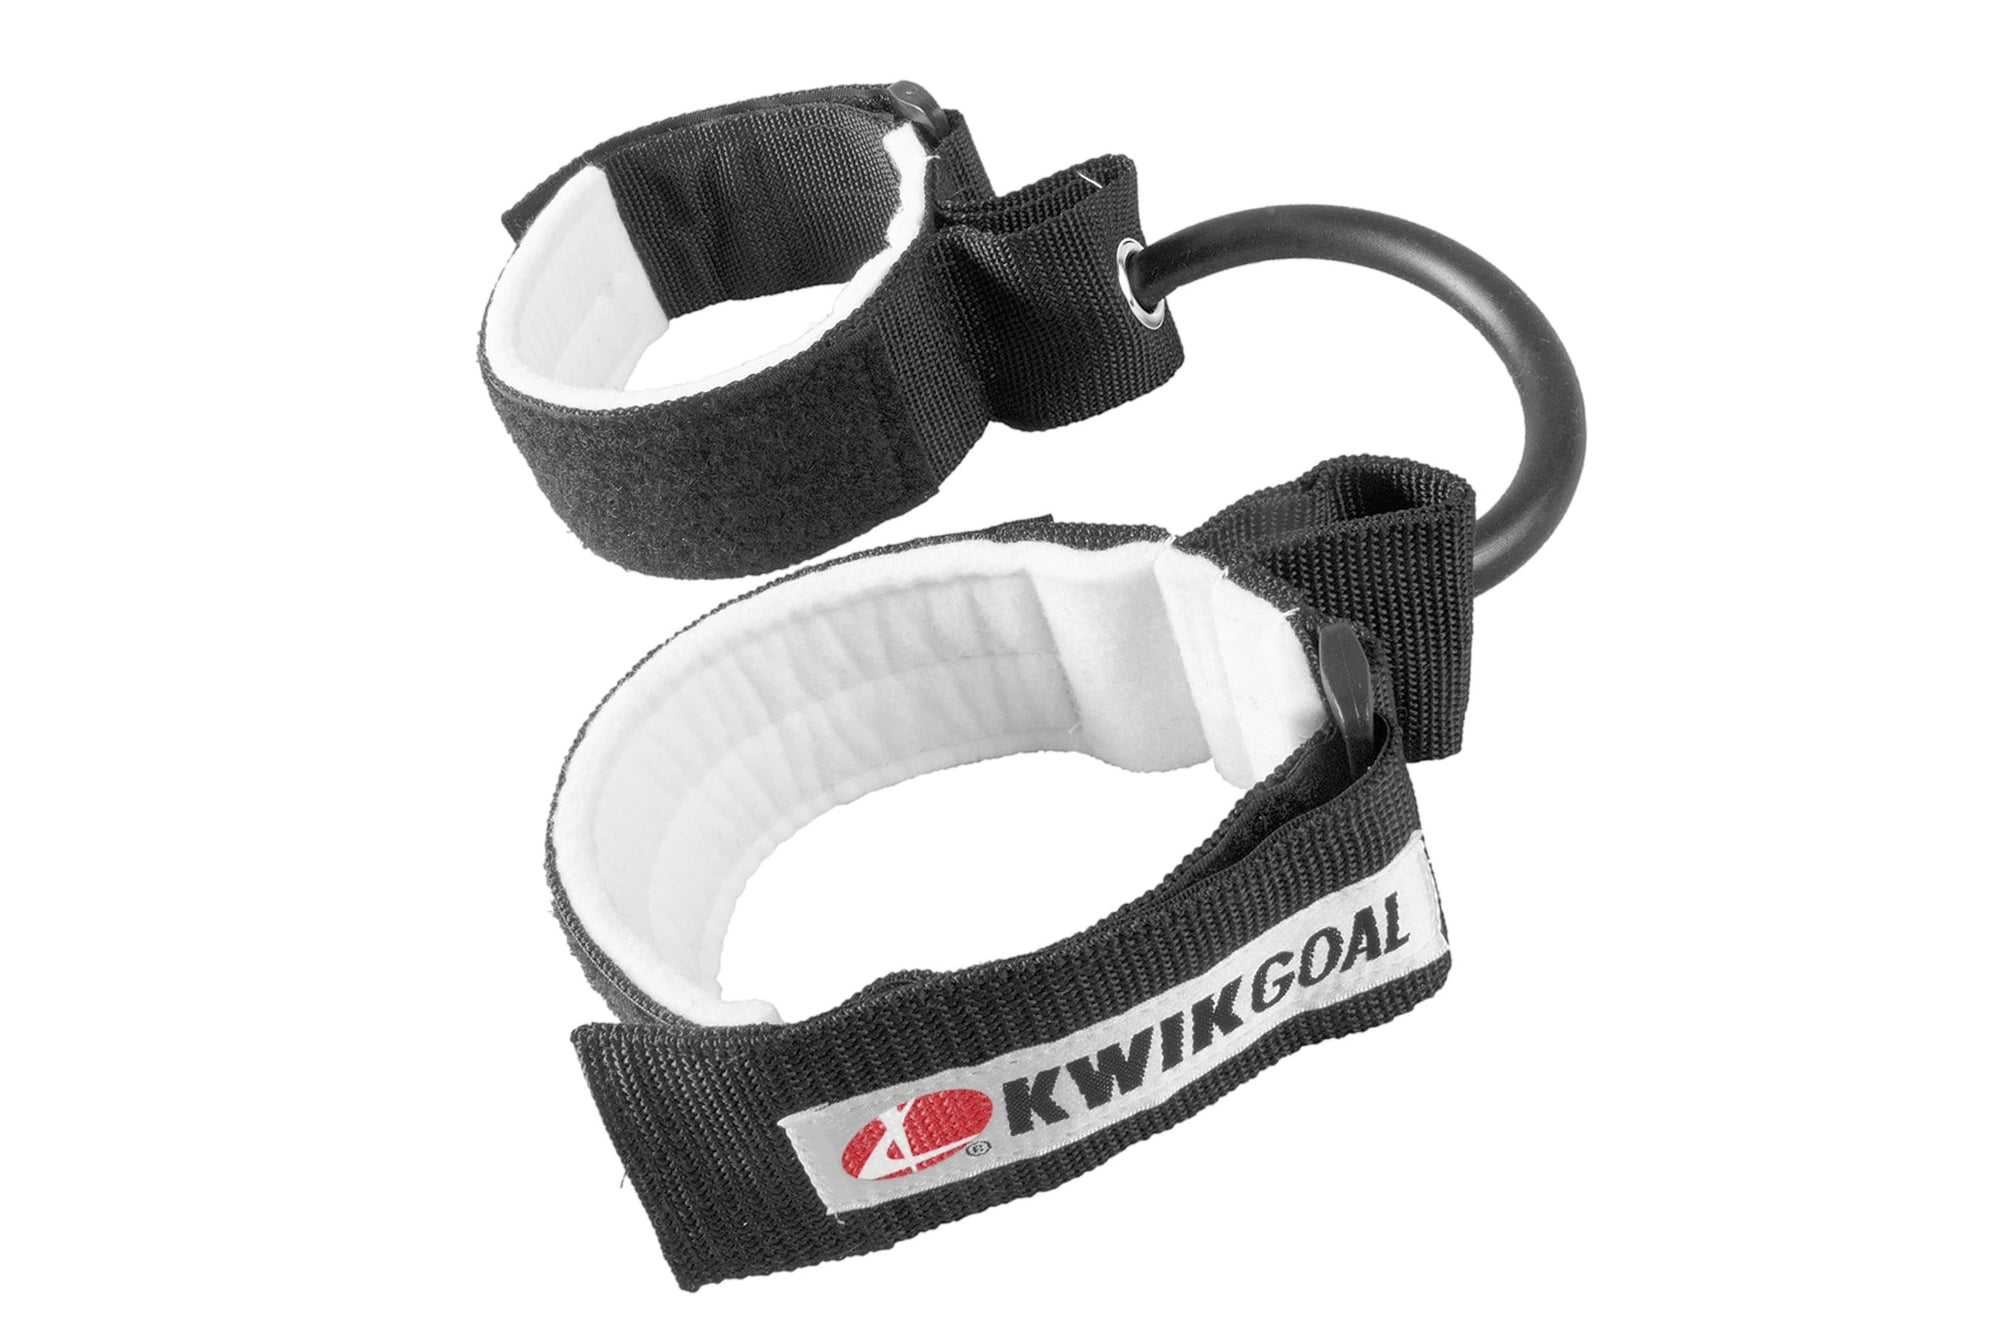 Black Ankle Speed Bands With White Interior & Kwik Goal Label